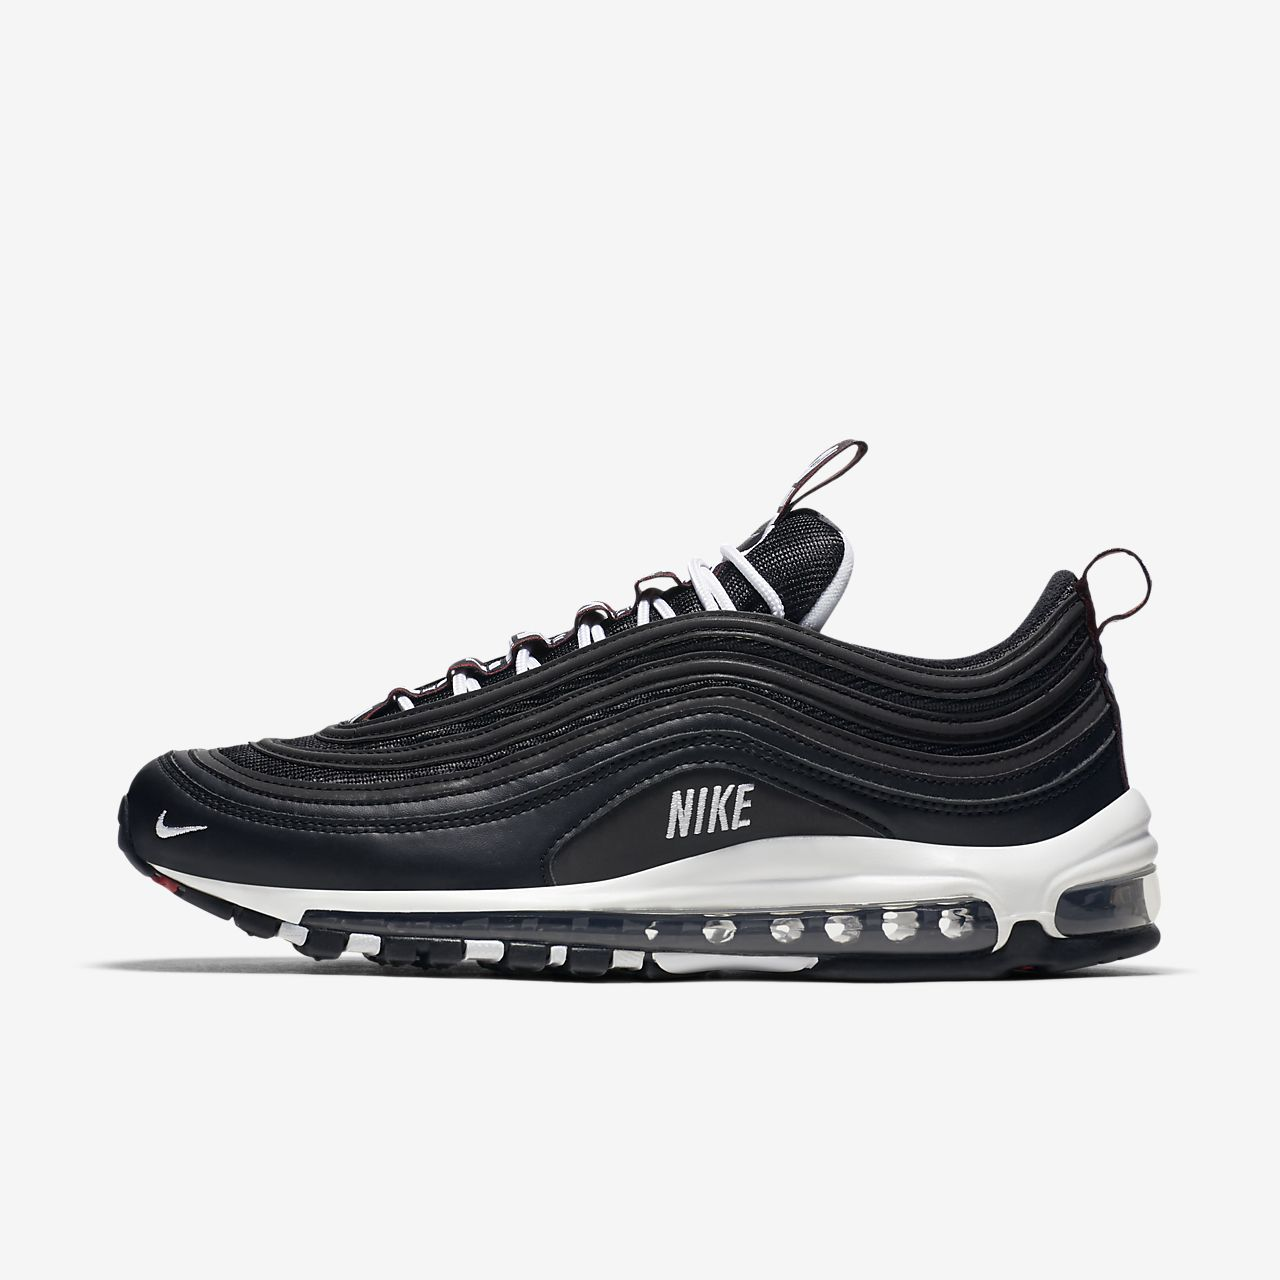 official photos d7ea2 aaf6a ... Nike Air Max 97 Premium Men s Shoe